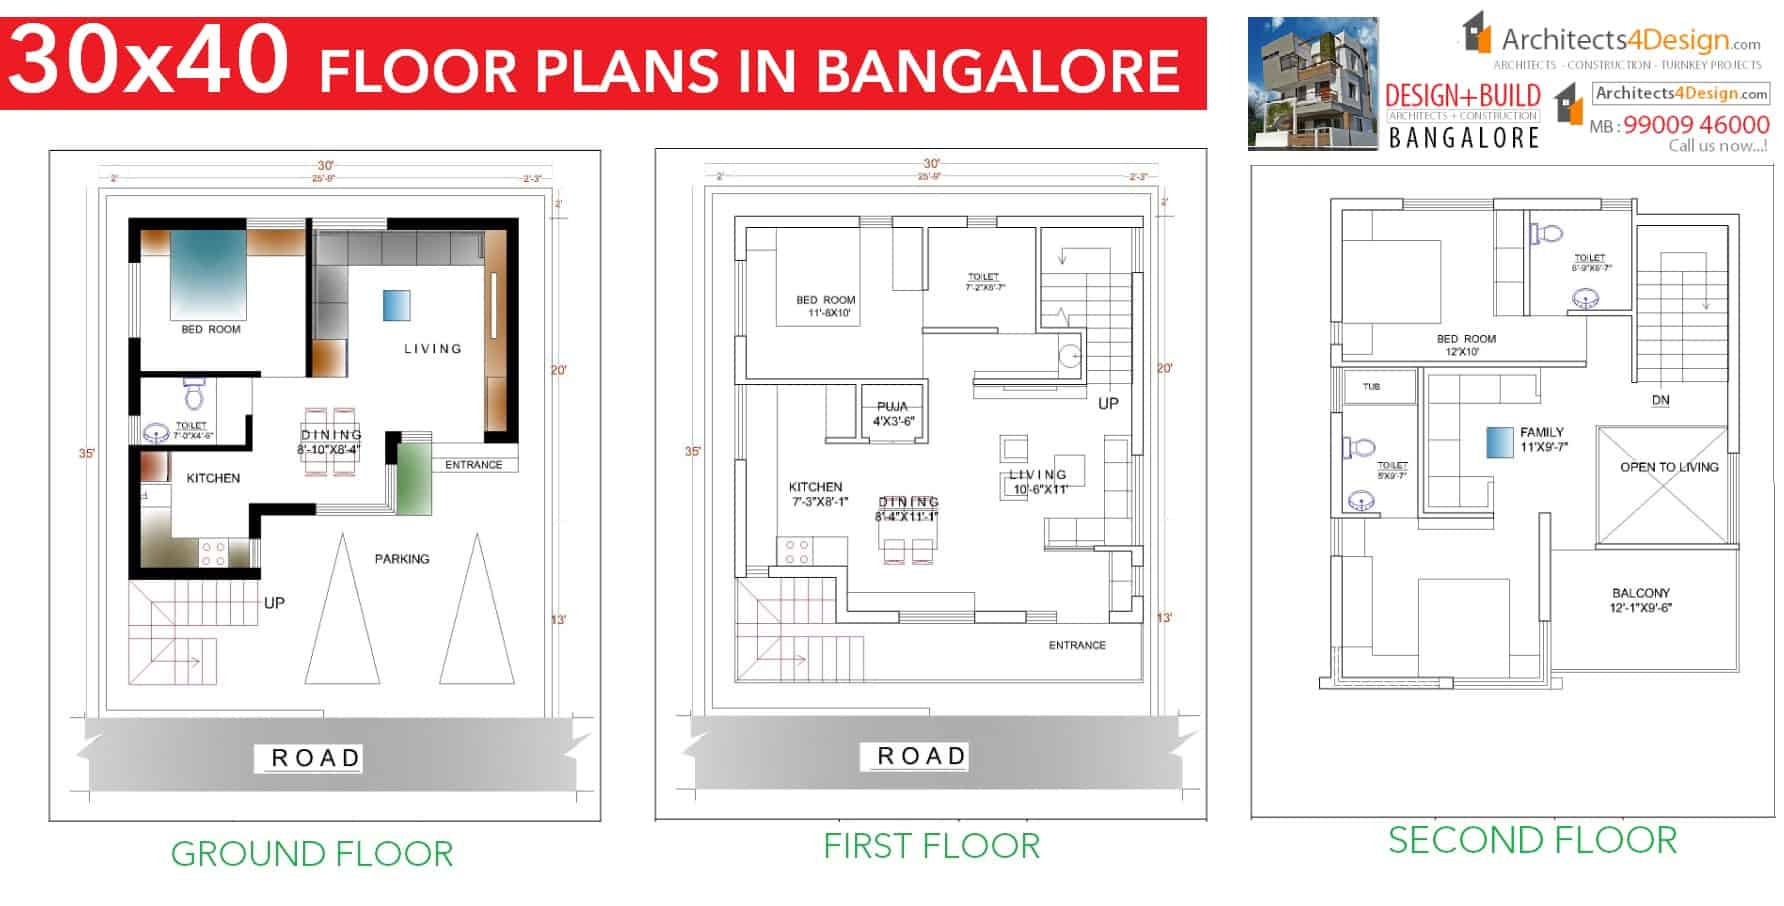 30x40 house plans in bangalore for g 1 g 2 g 3 g 4 floors for 30x40 floor plan